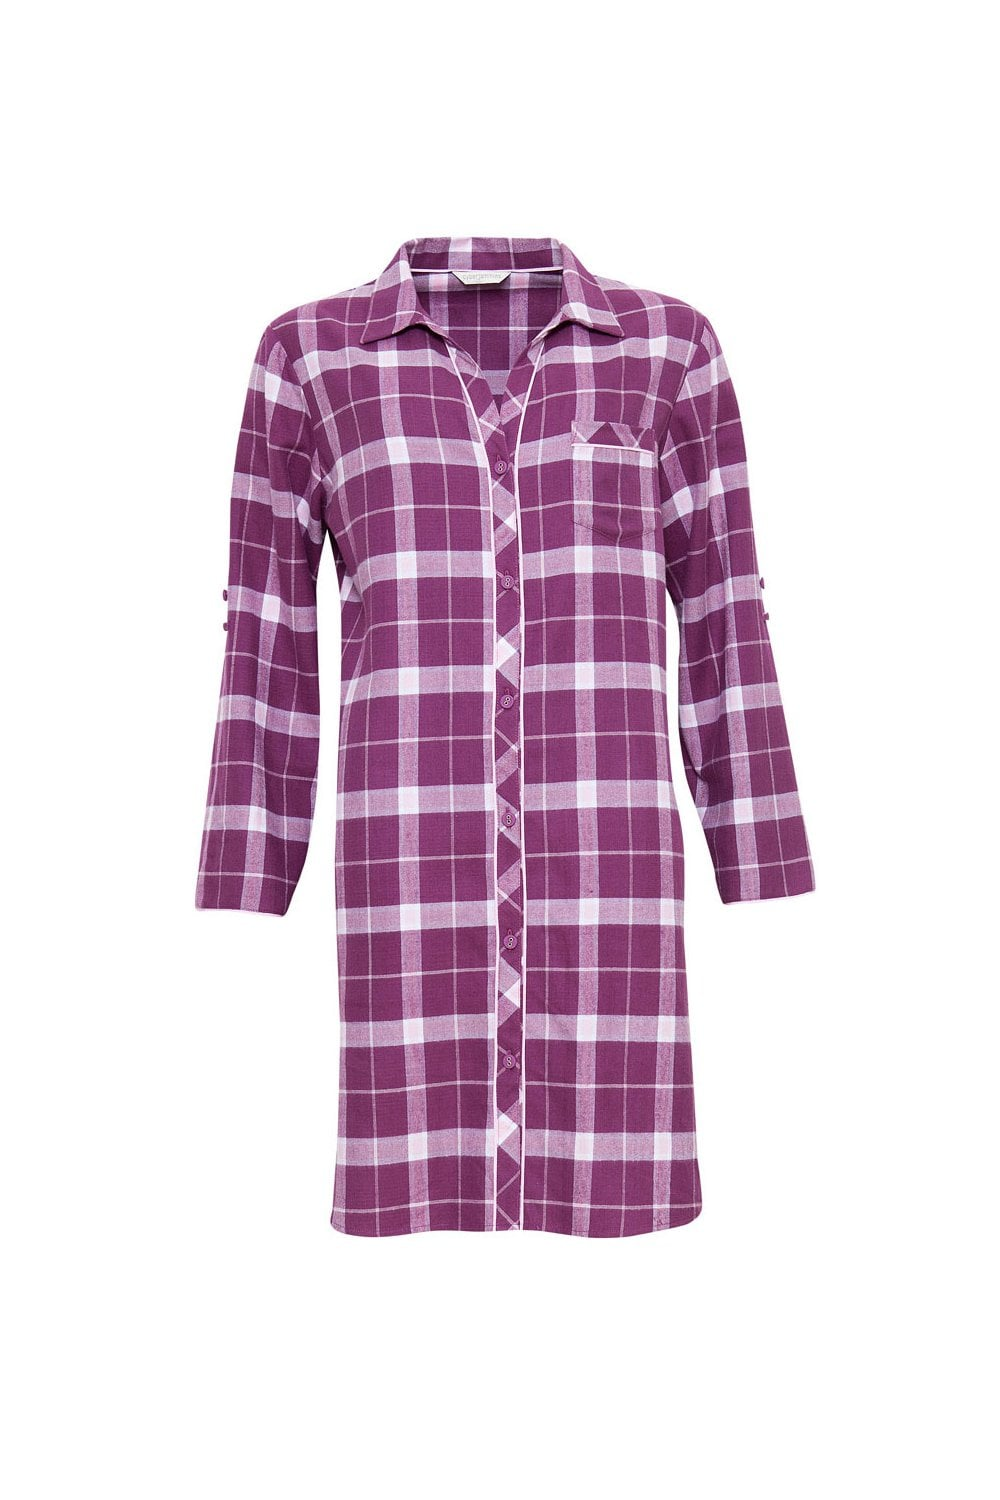 a8b59562ad Cyberjammies Fiona Brushed Check Nightshirt - Magento White ...